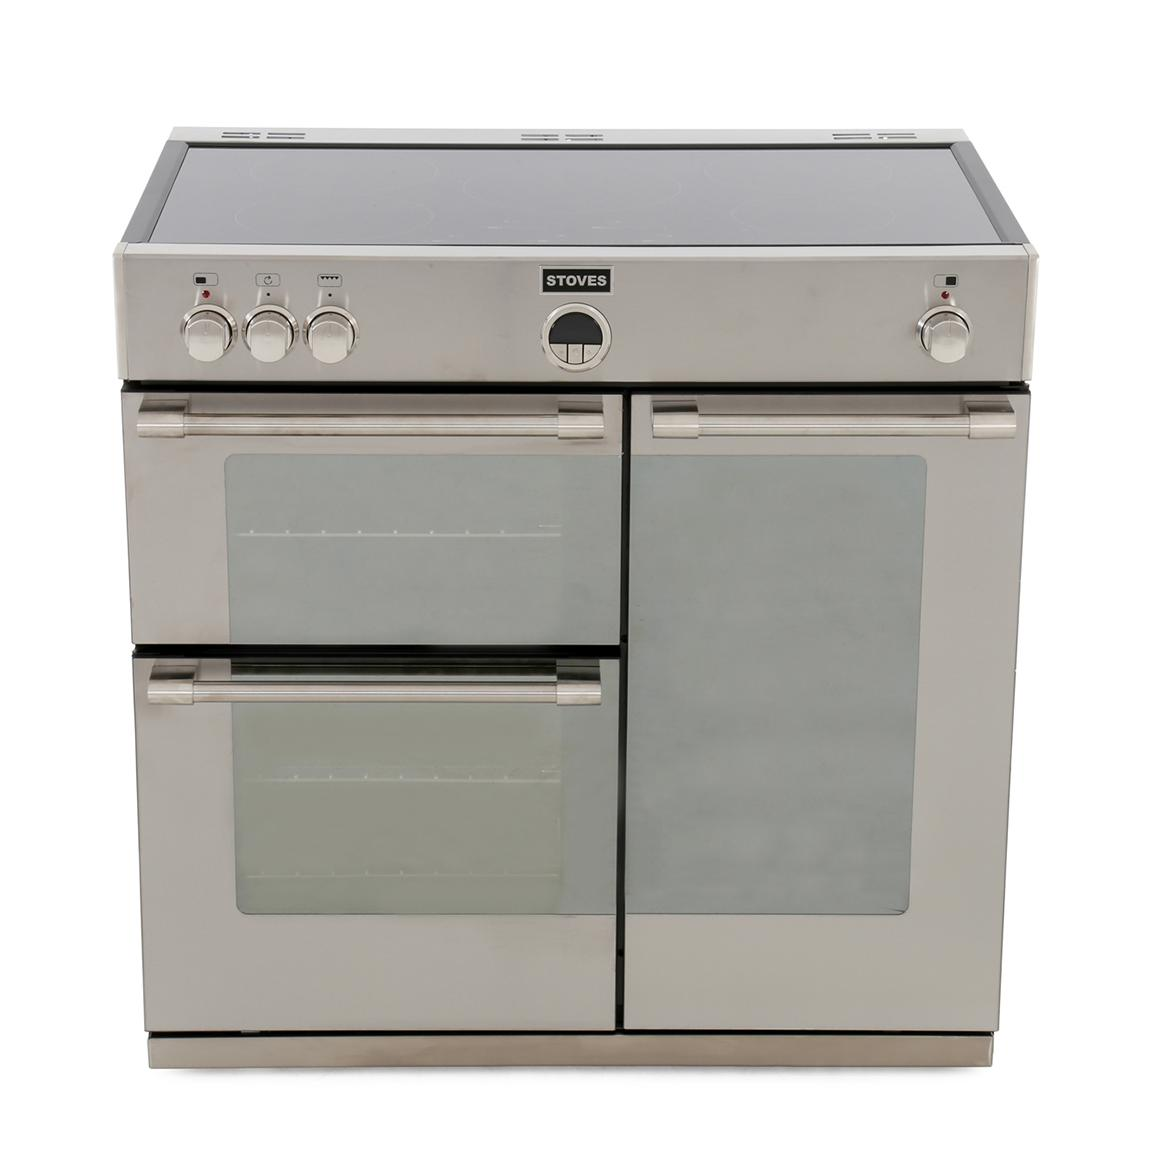 Stoves Sterling 900Ei Stainless Steel 90cm Electric Induction Range Cooker